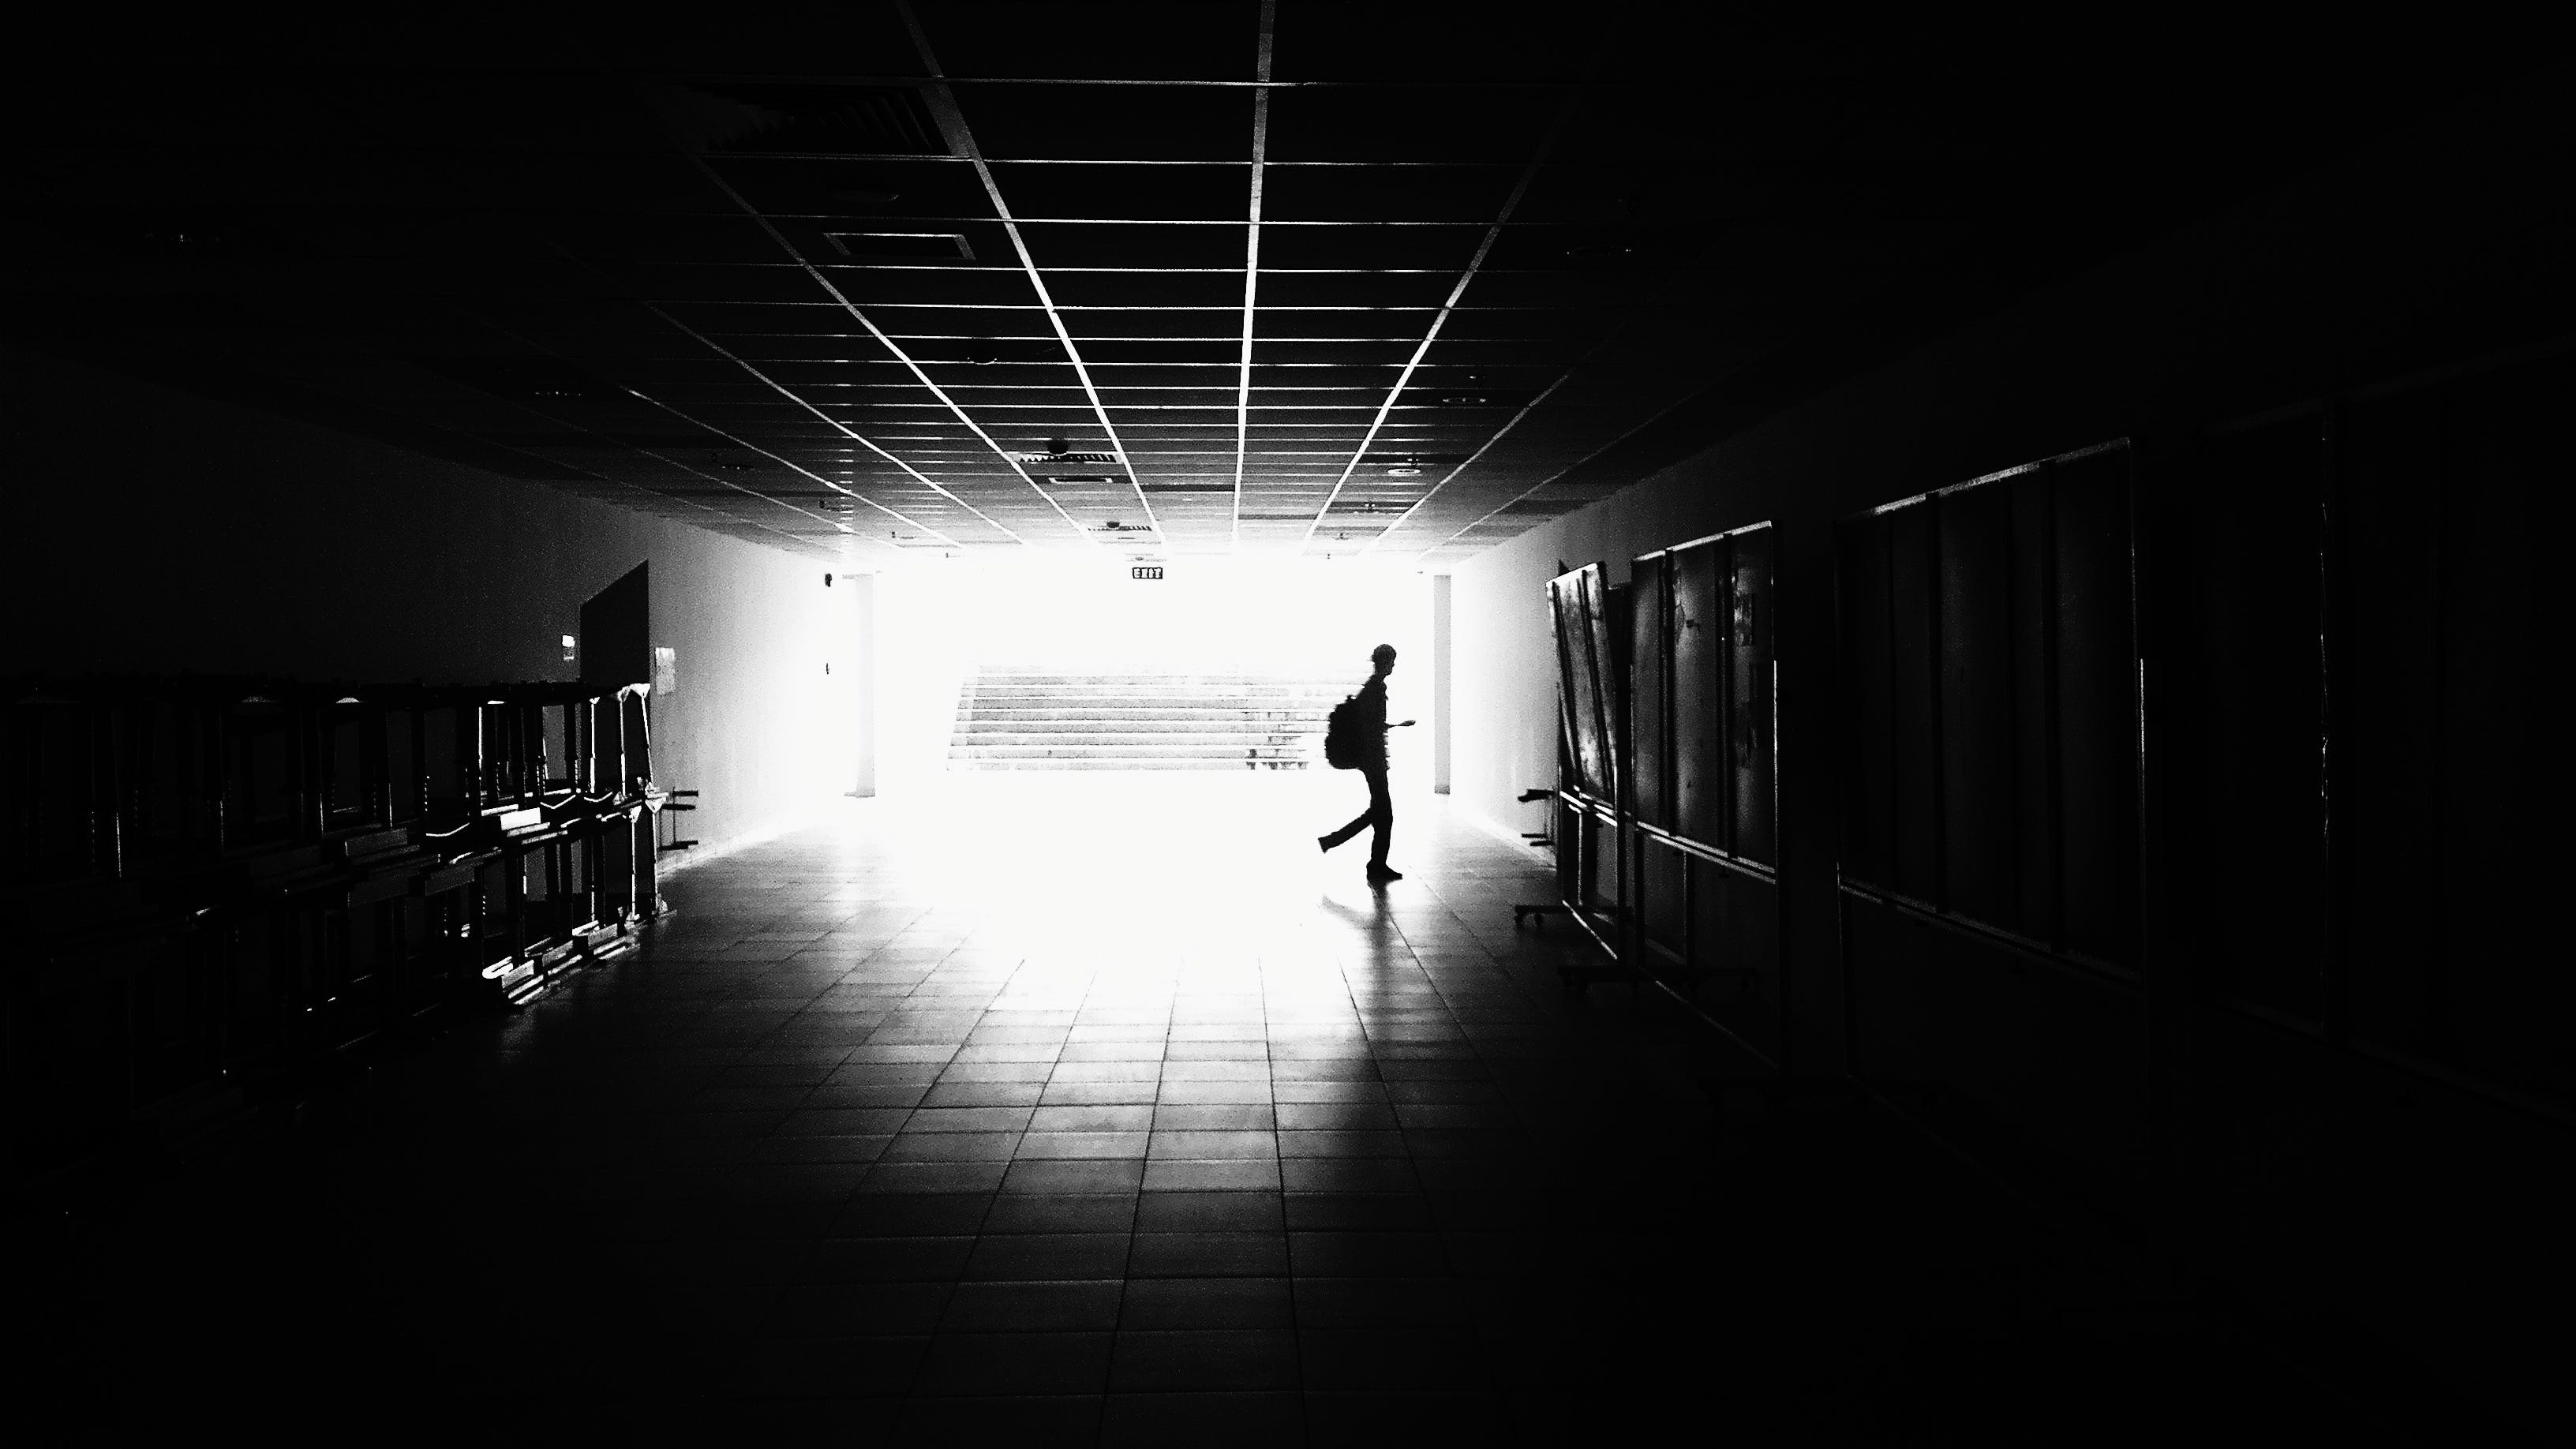 Silhouette of Man Walking on Hall